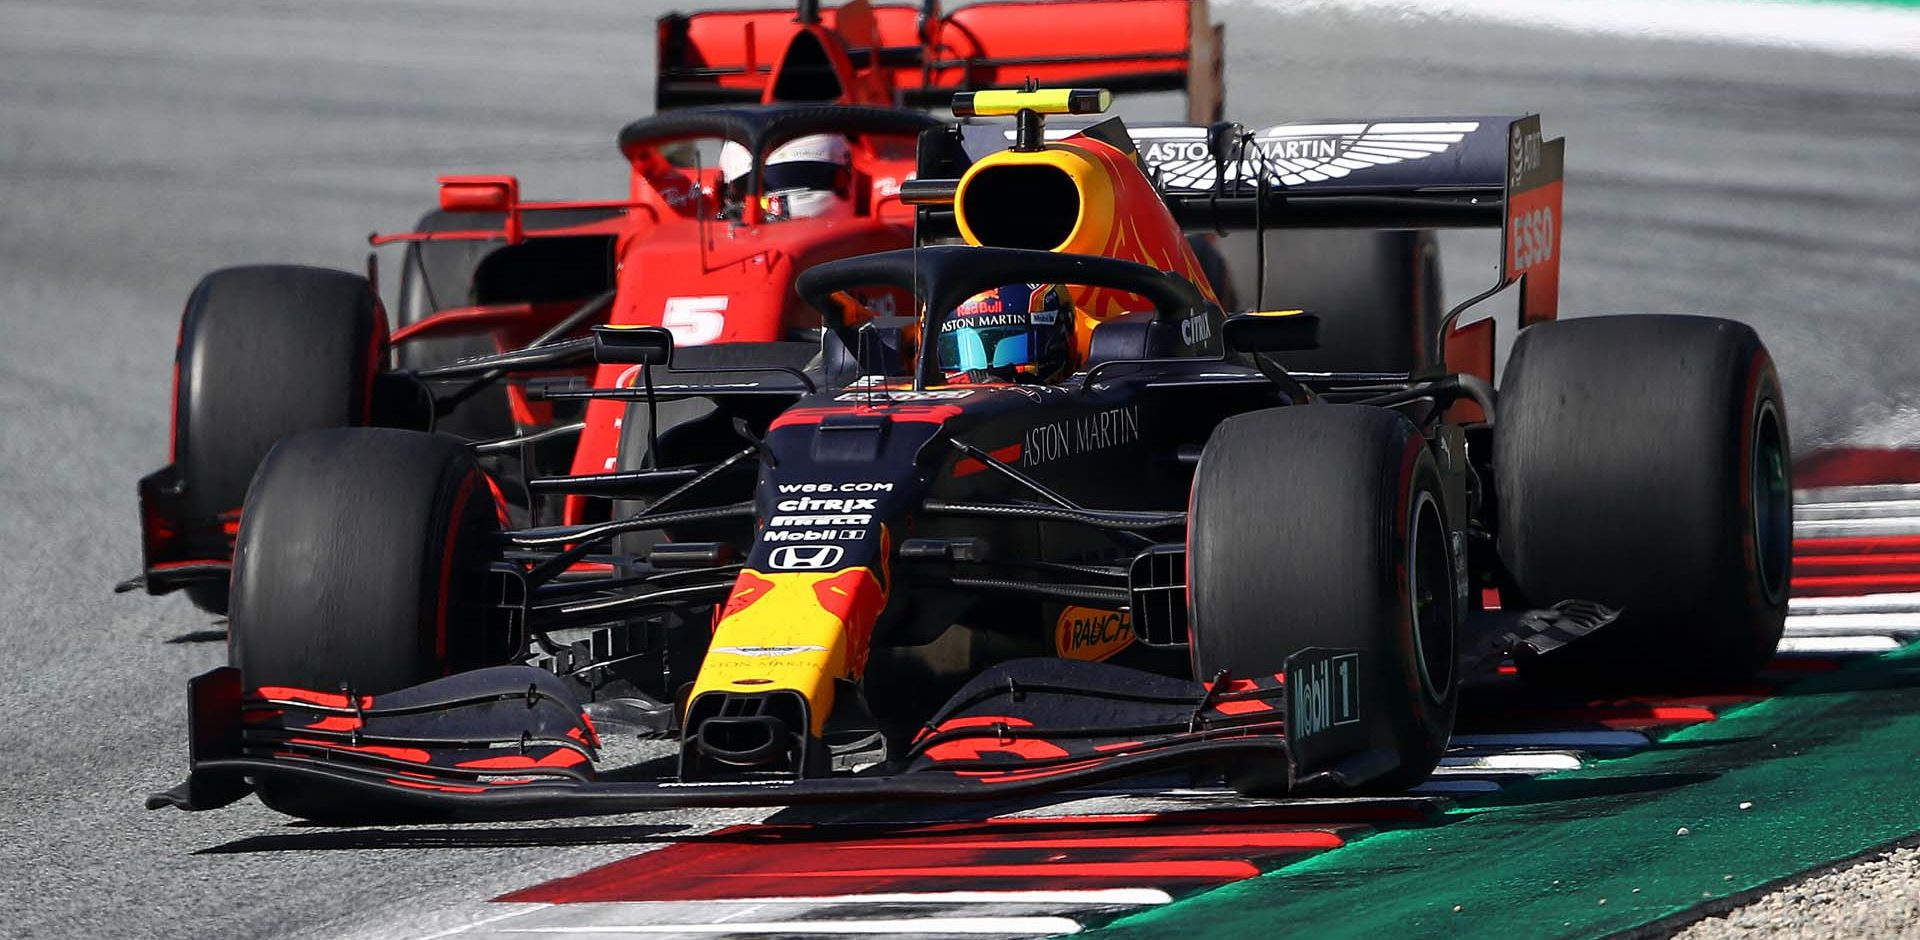 SPIELBERG, AUSTRIA - JULY 05: Alexander Albon of Thailand driving the (23) Aston Martin Red Bull Racing RB16 leads Sebastian Vettel of Germany driving the (5) Scuderia Ferrari SF1000 during the Formula One Grand Prix of Austria at Red Bull Ring on July 05, 2020 in Spielberg, Austria. (Photo by Bryn Lennon/Getty Images) // Getty Images / Red Bull Content Pool  // AP-24HQA38ZS1W11 // Usage for editorial use only //